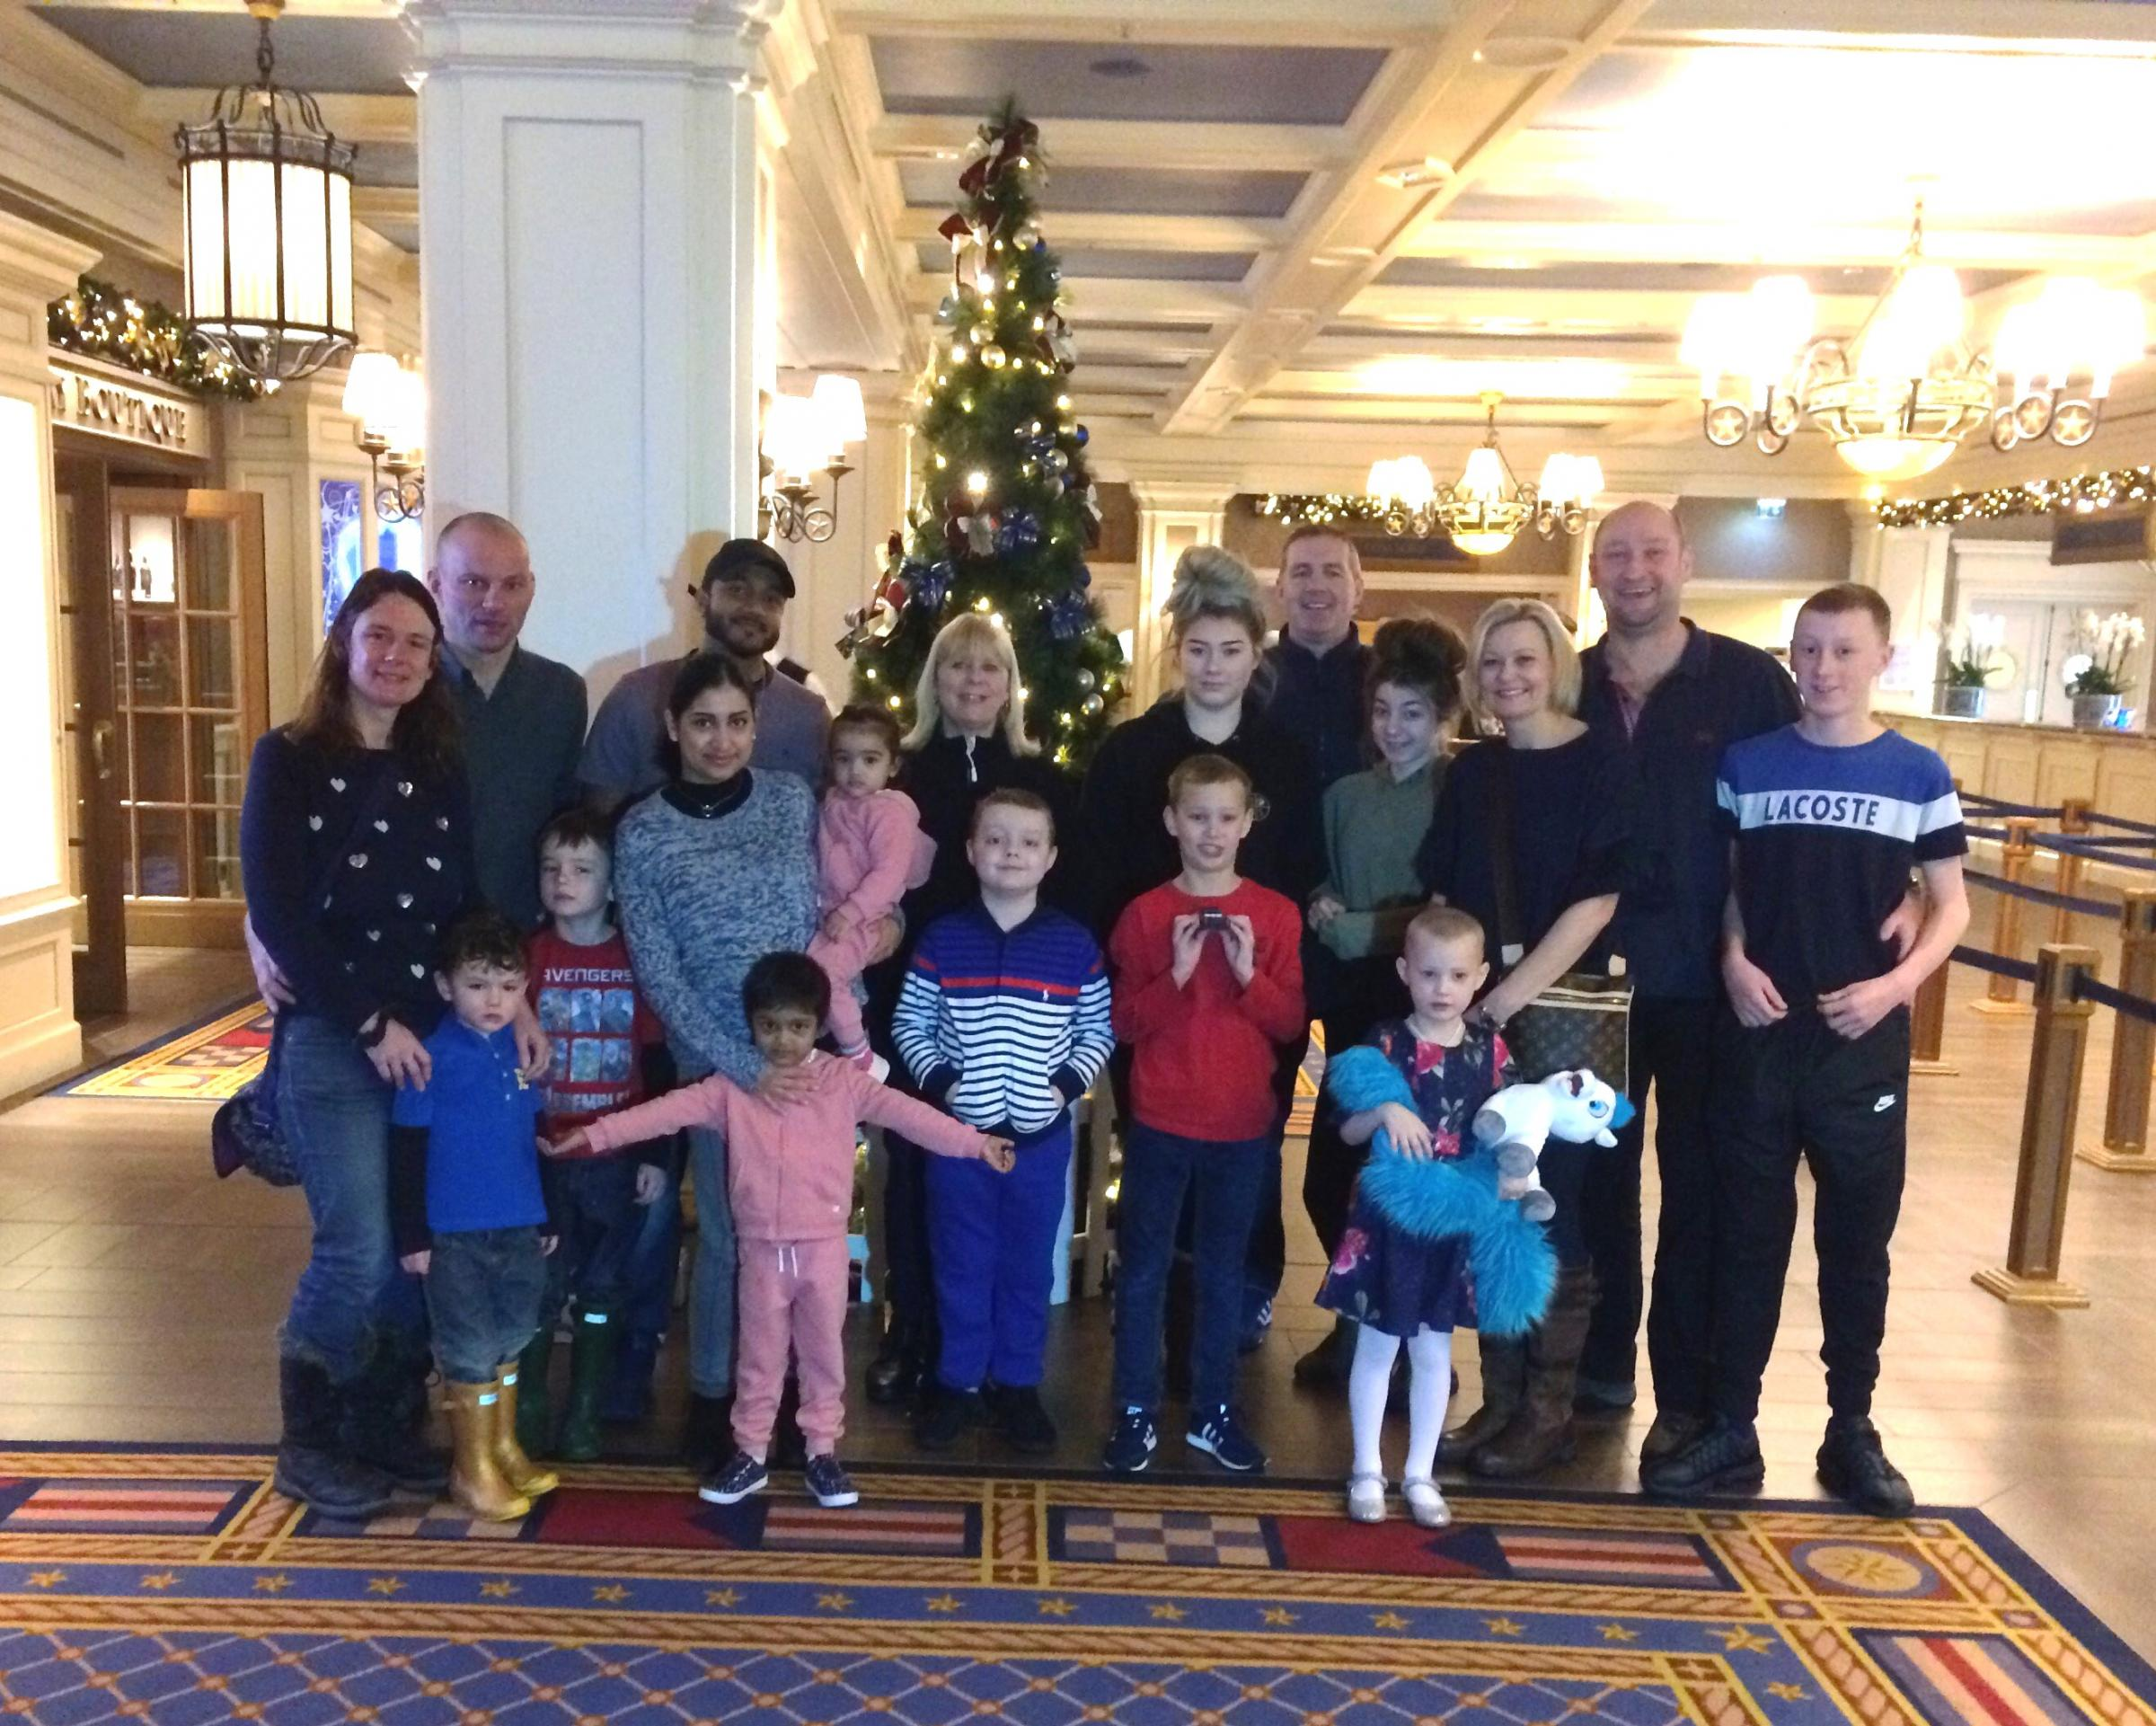 Christmas comes early for children with cancer at Disneyland Paris thanks to generous residents